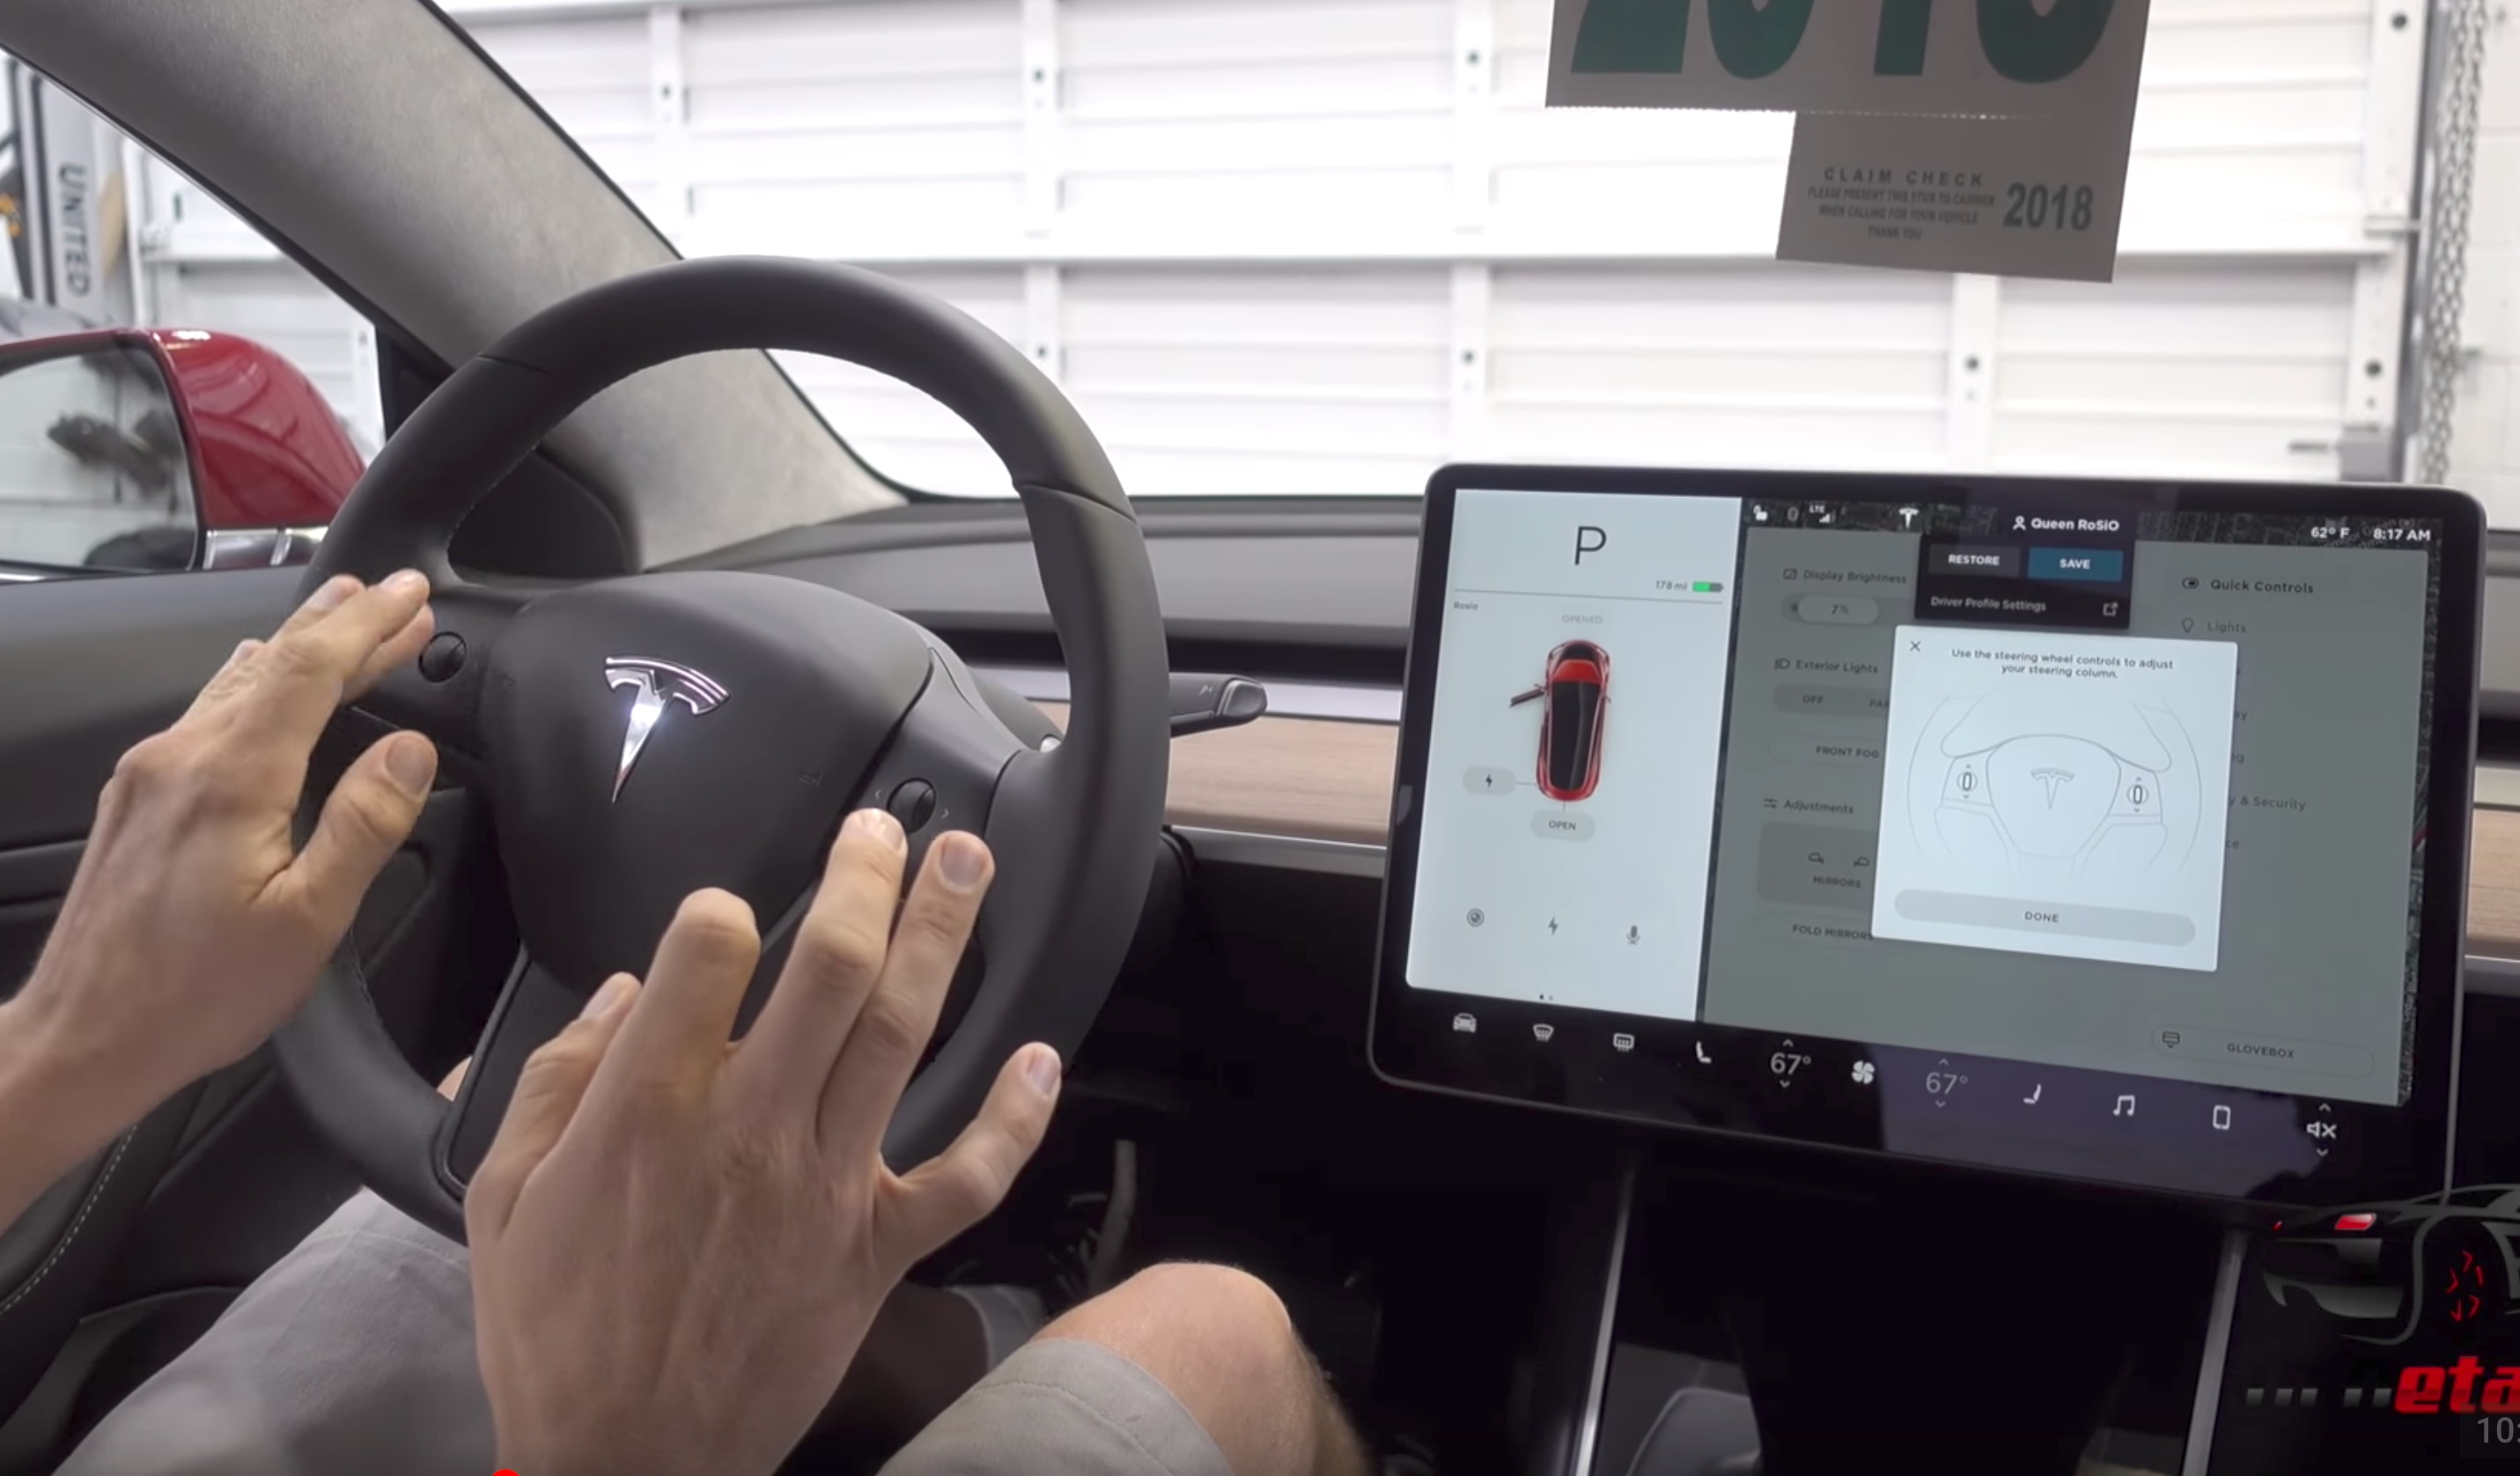 Tesla Model 3 interior features: Steering wheel adjustments, glovebox, coat hooks, vanity mirror, and more